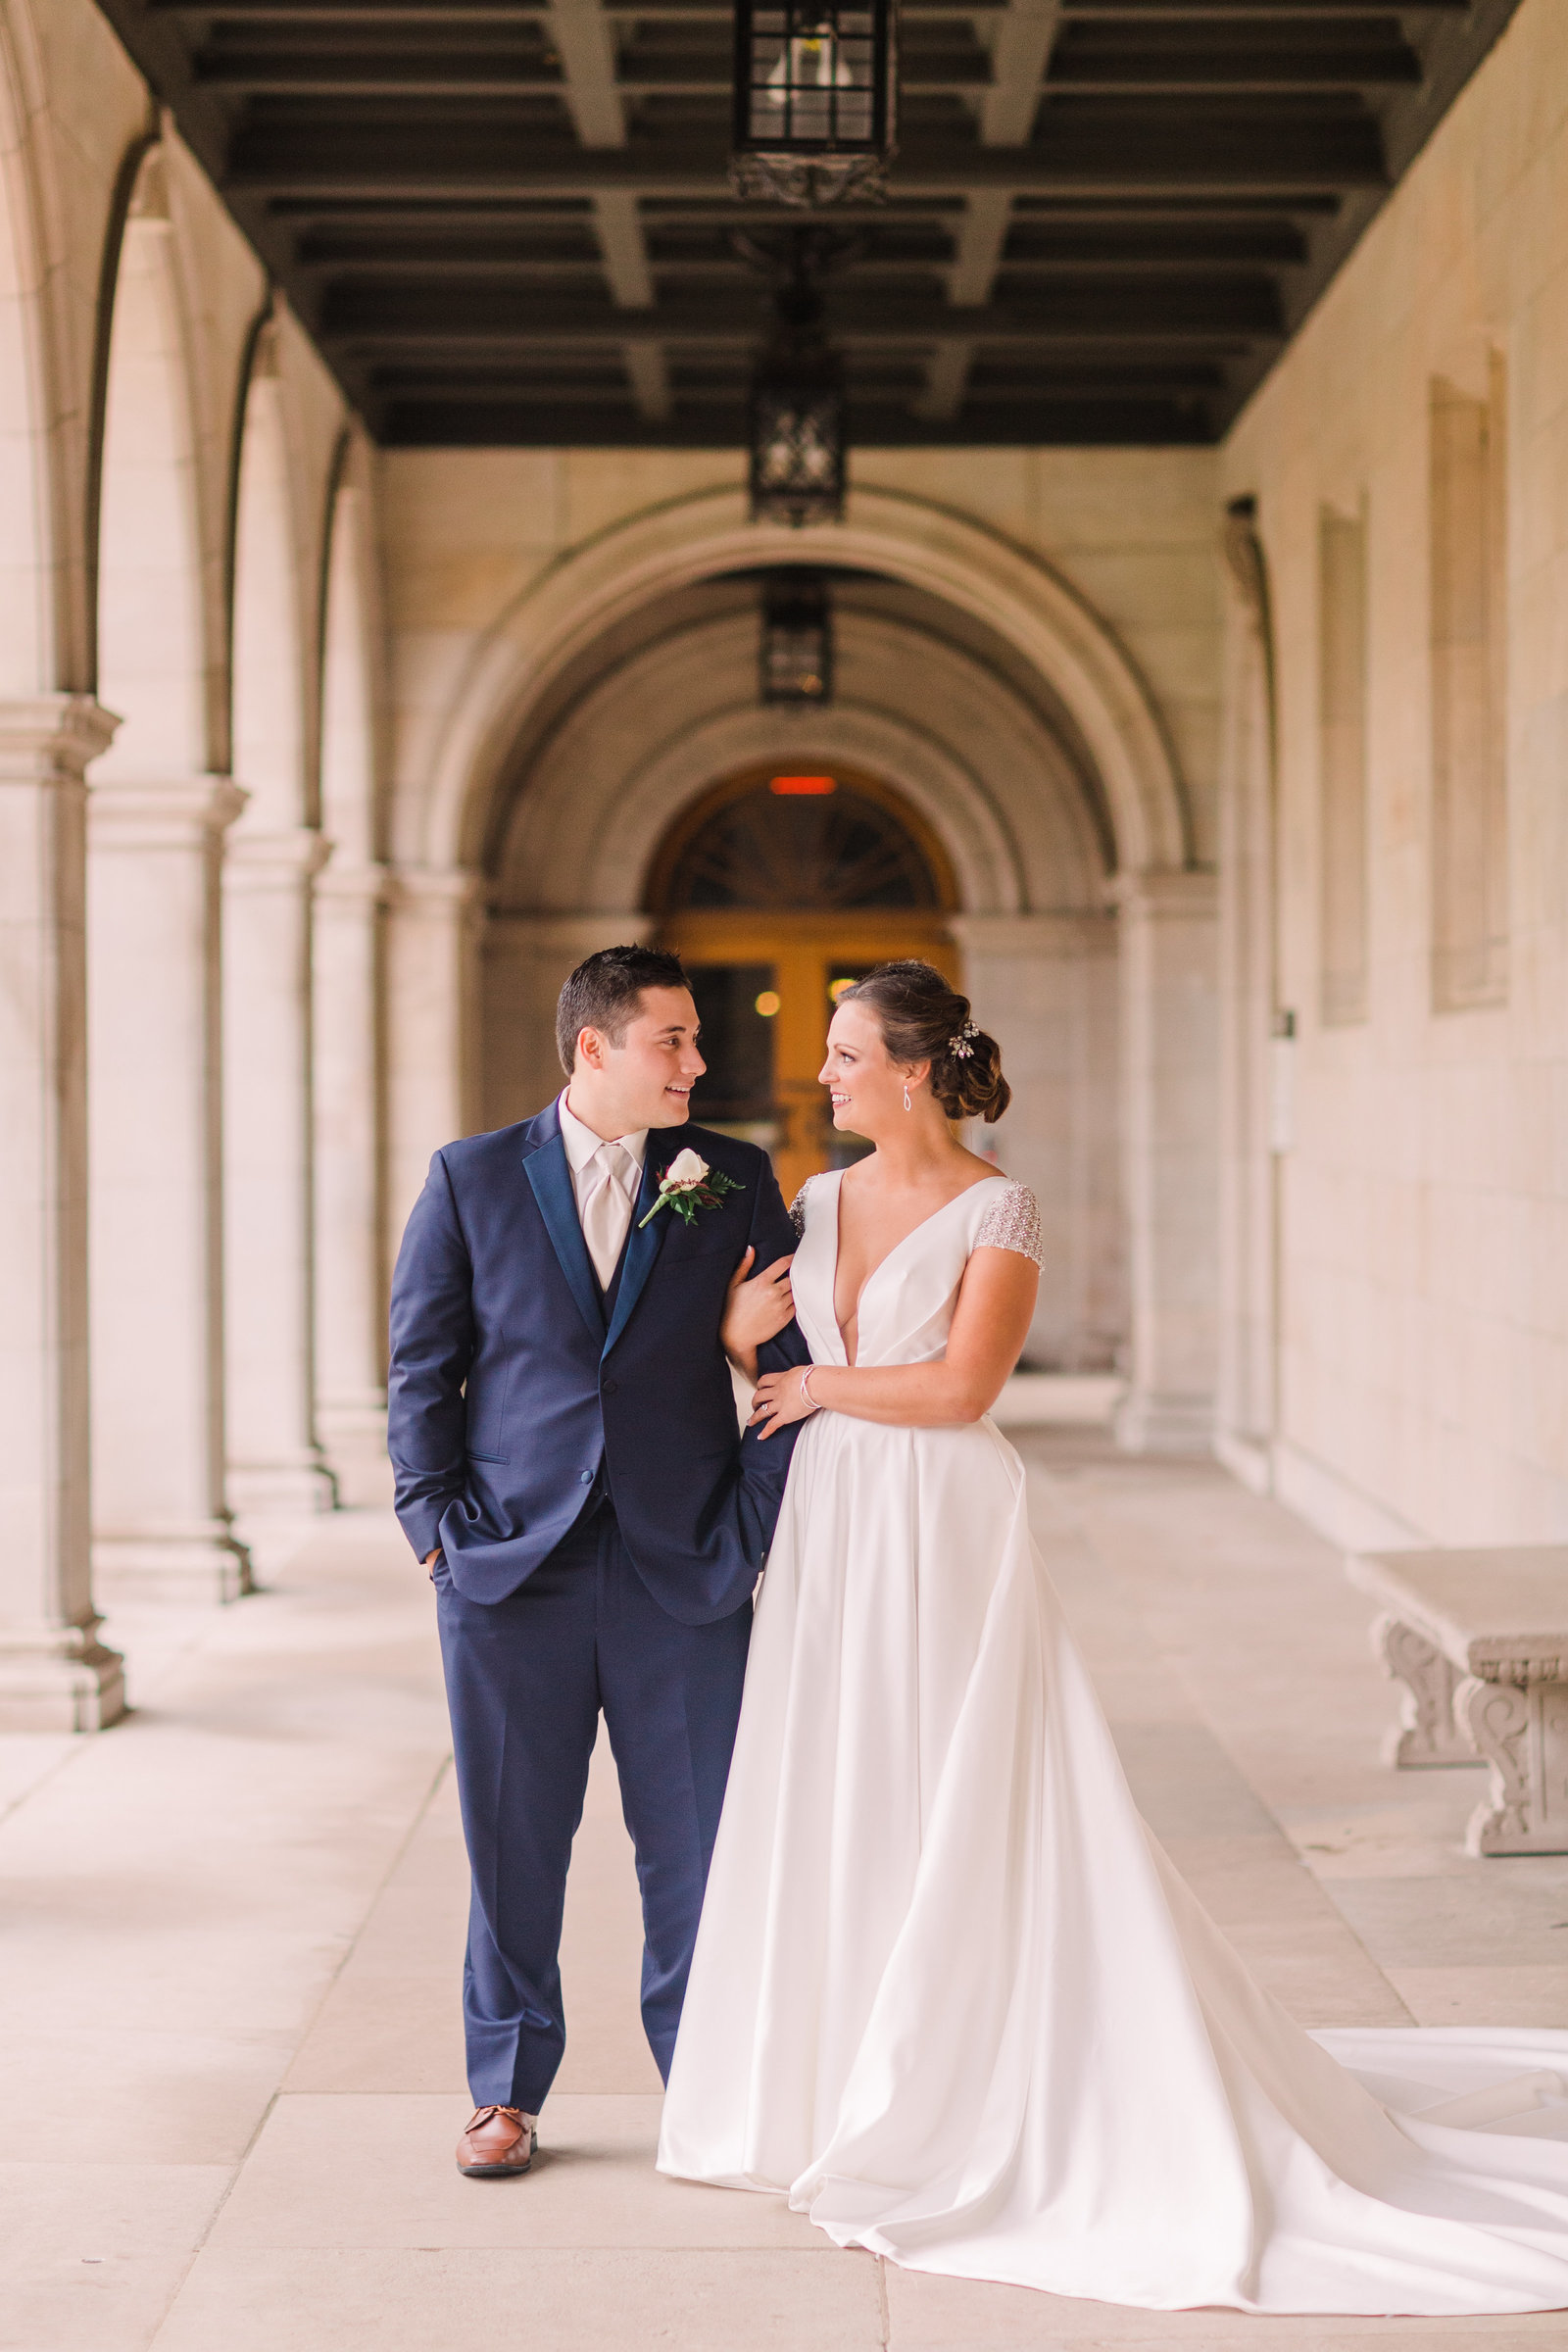 Bride and Groom, Suzie and Ale, stand arm in arm in the great hall of Washington University.